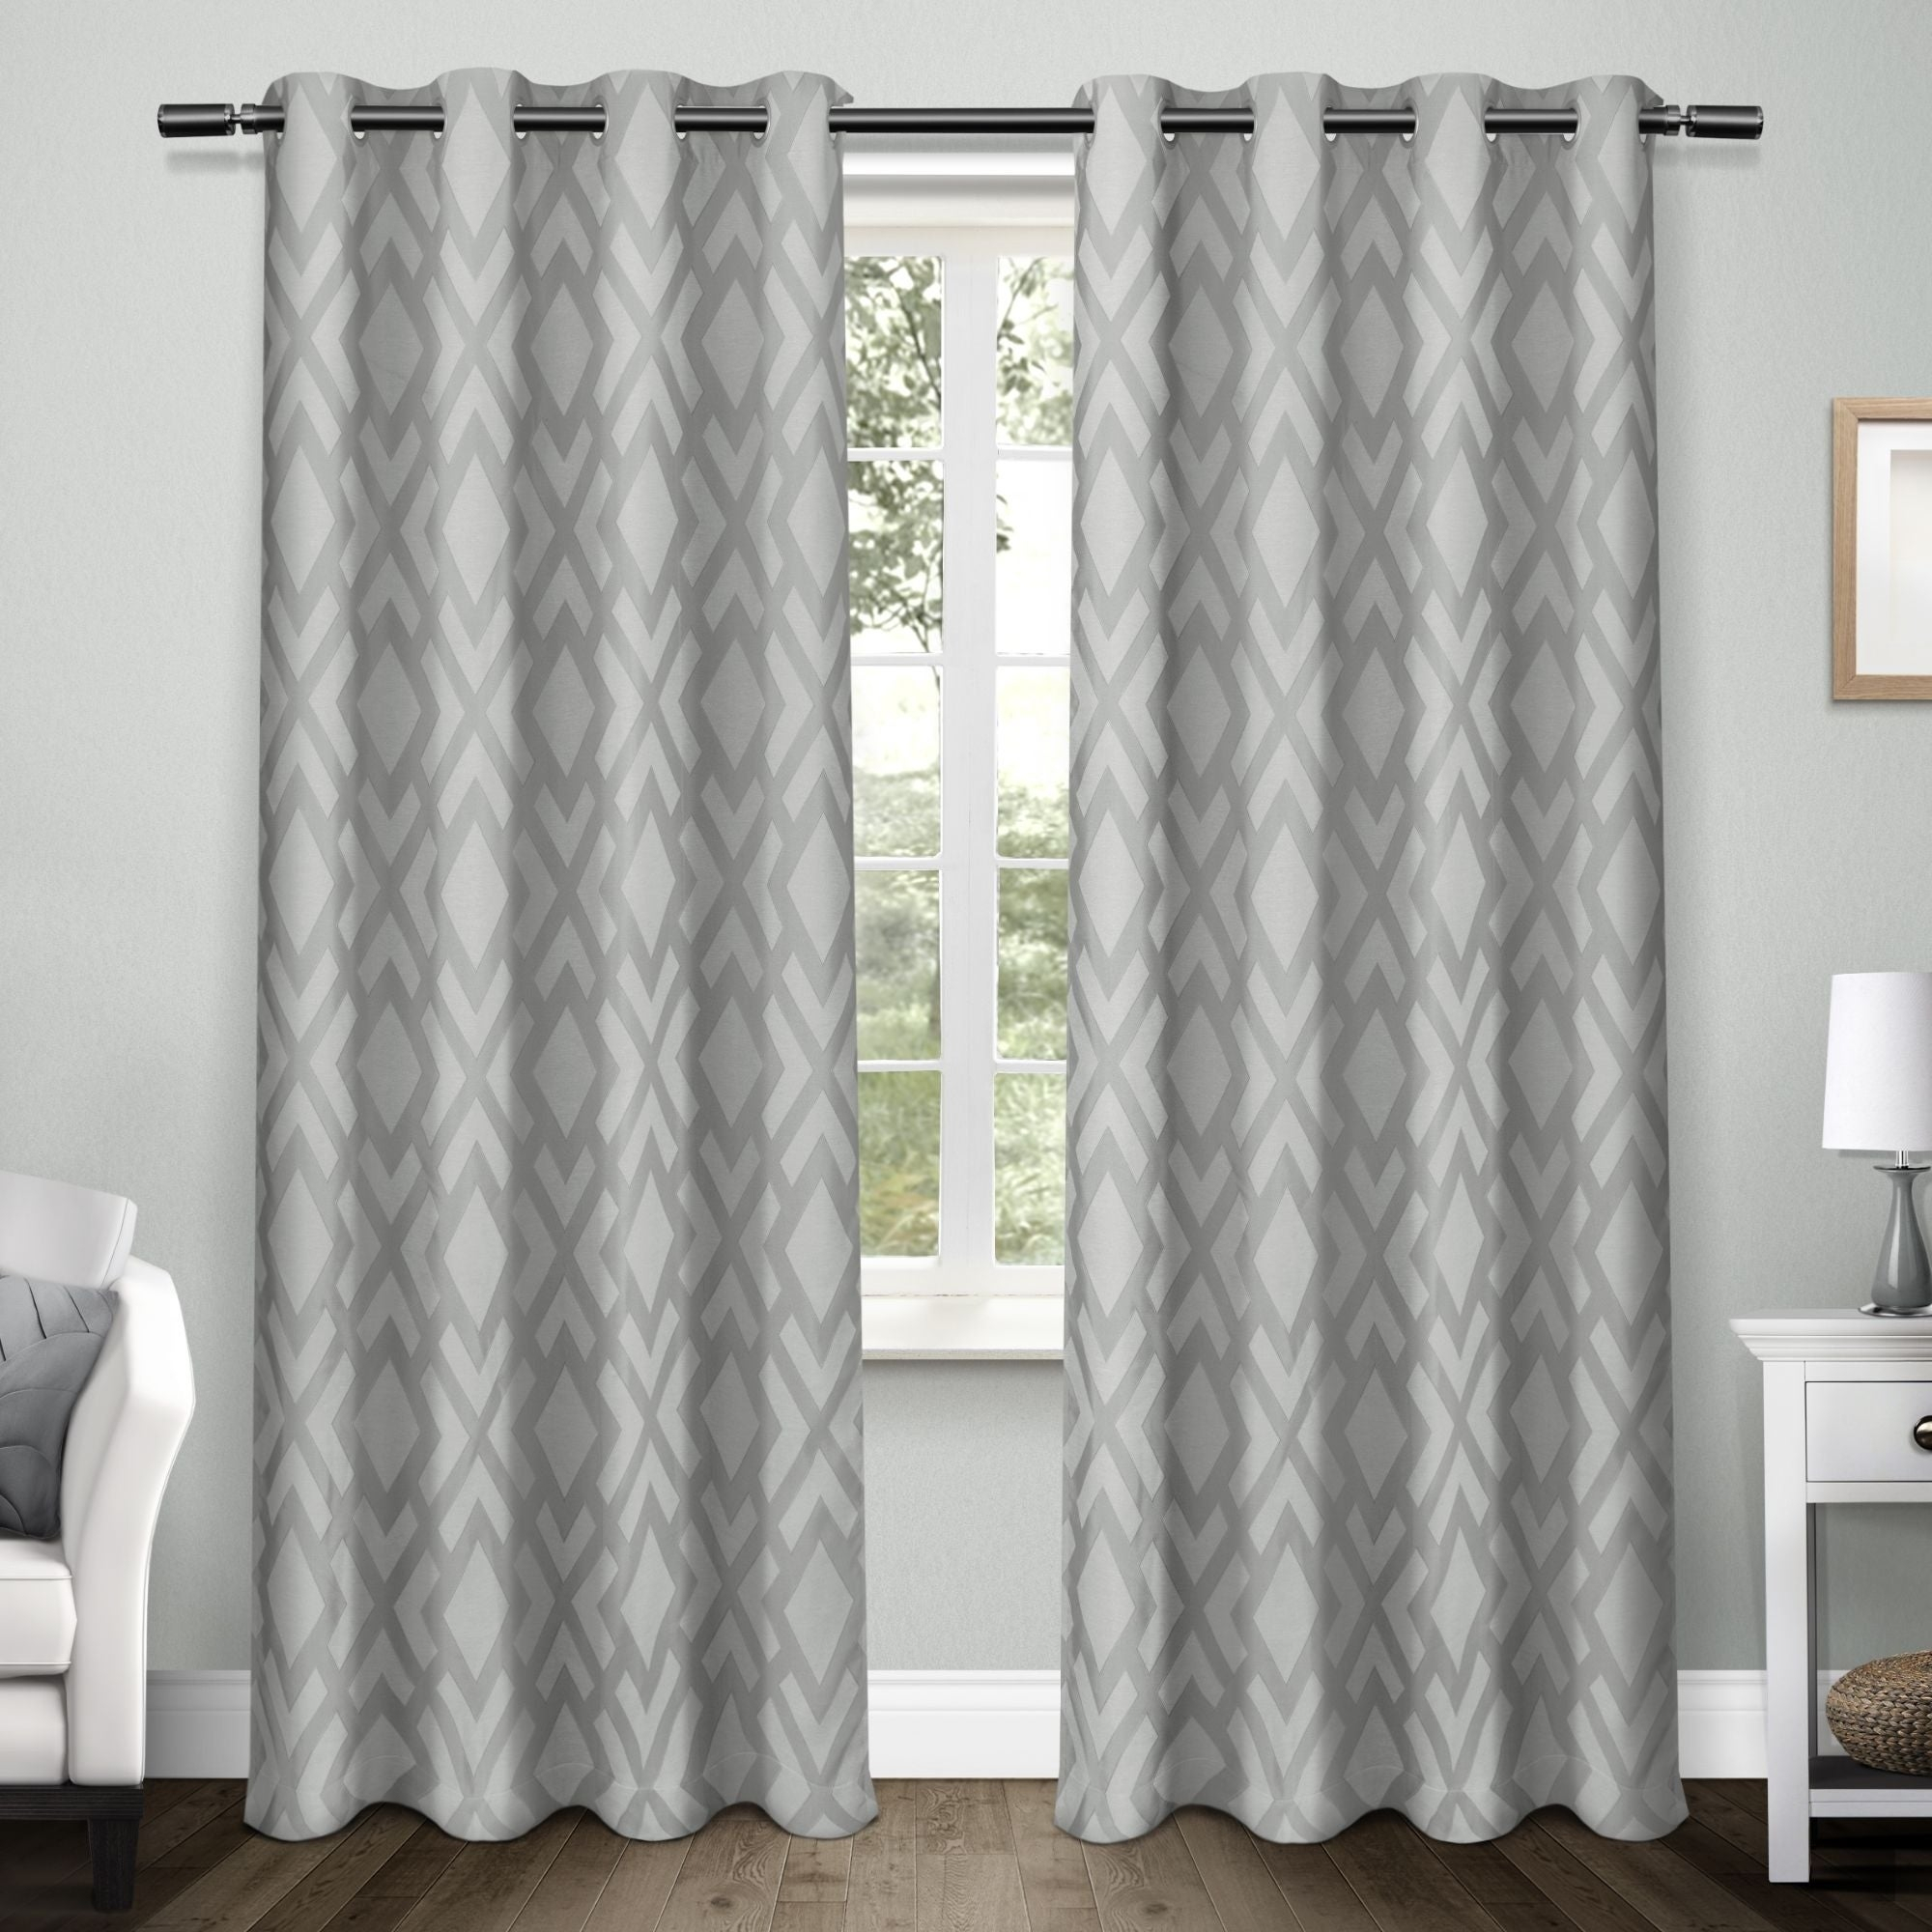 Ati Home Easton Thermal Woven Blackout Grommet Top Curtain Panel Pair Pertaining To Twig Insulated Blackout Curtain Panel Pairs With Grommet Top (View 4 of 30)